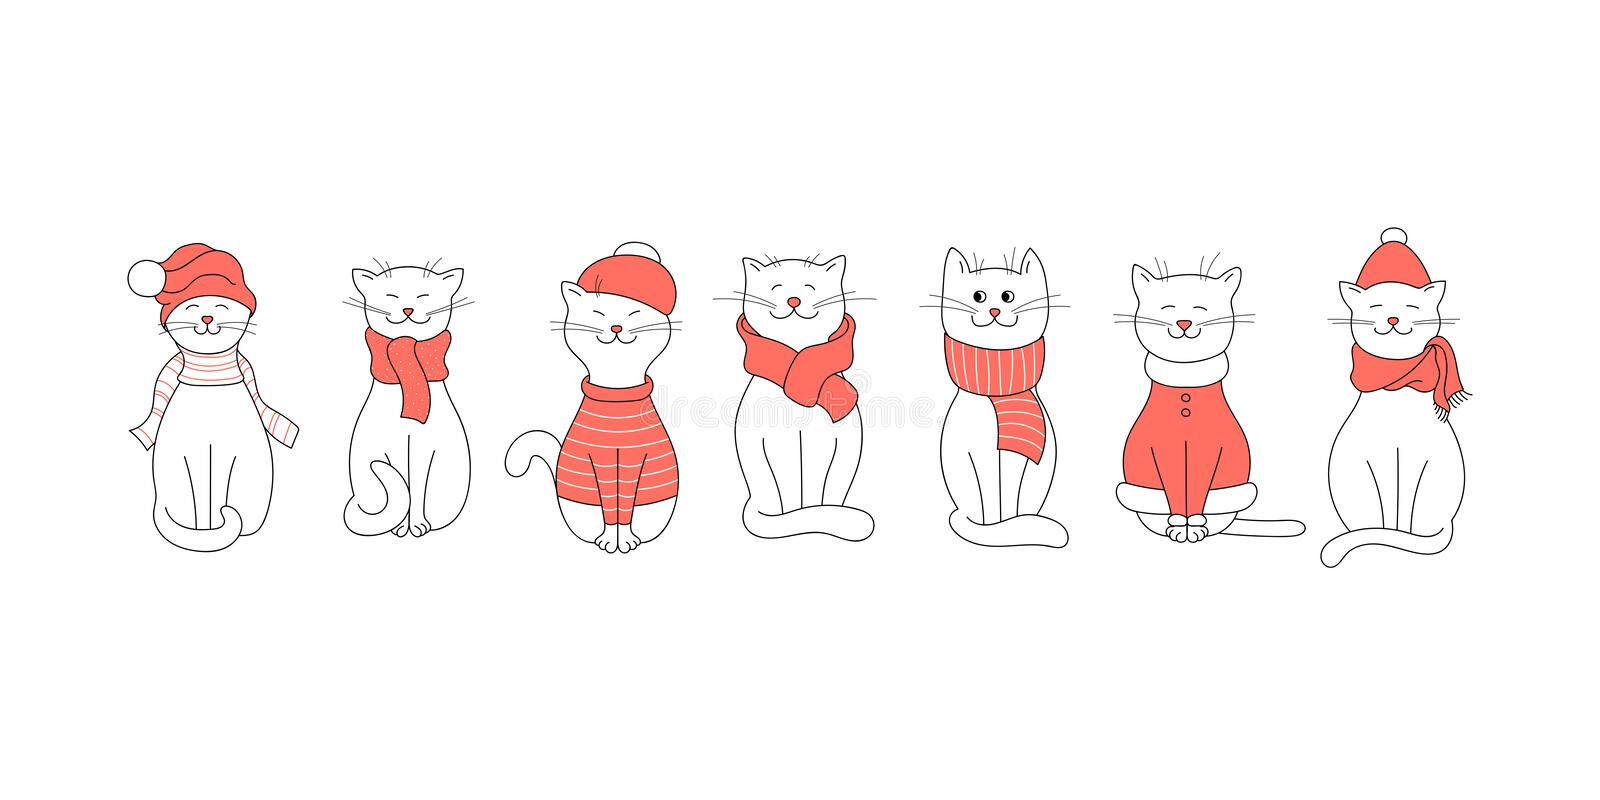 Vector winter set with cute cats in clothes. White cats in hats, scarves and sweaters on a white background. royalty free illustration